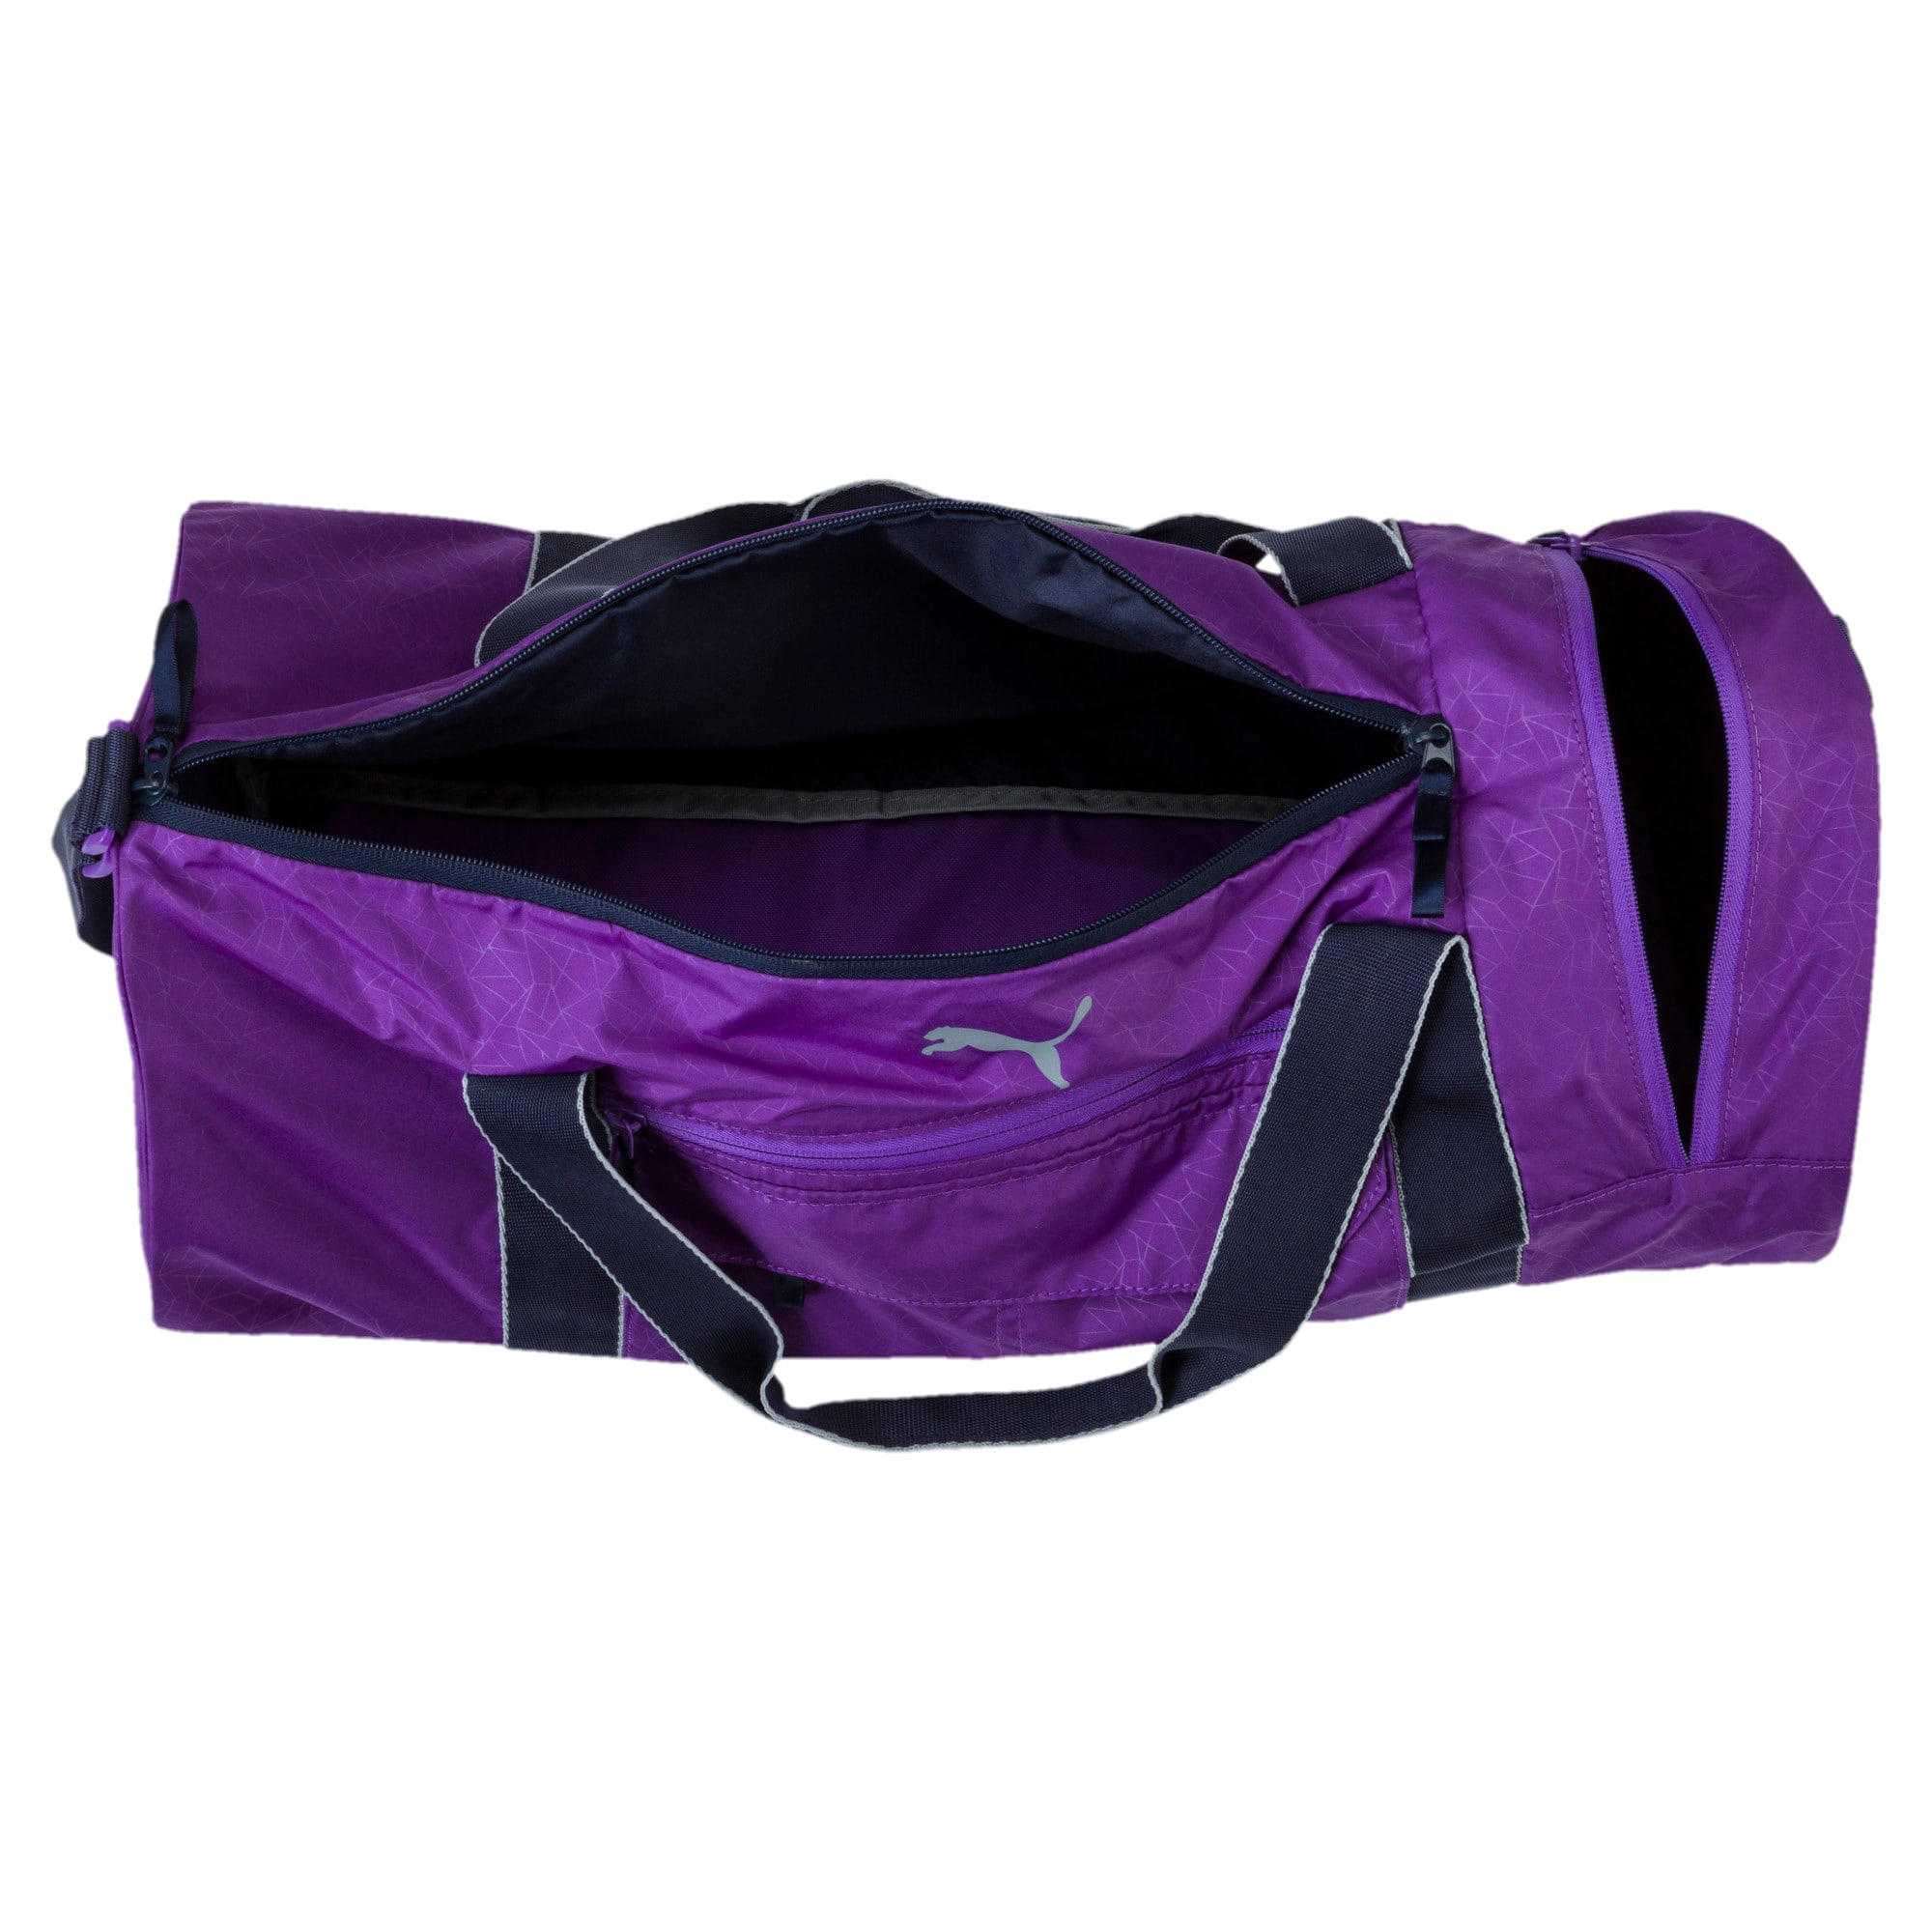 Thumbnail 3 of Training Women's Sports Bag, ELECTRIC PURPLE-Peacoat, medium-IND